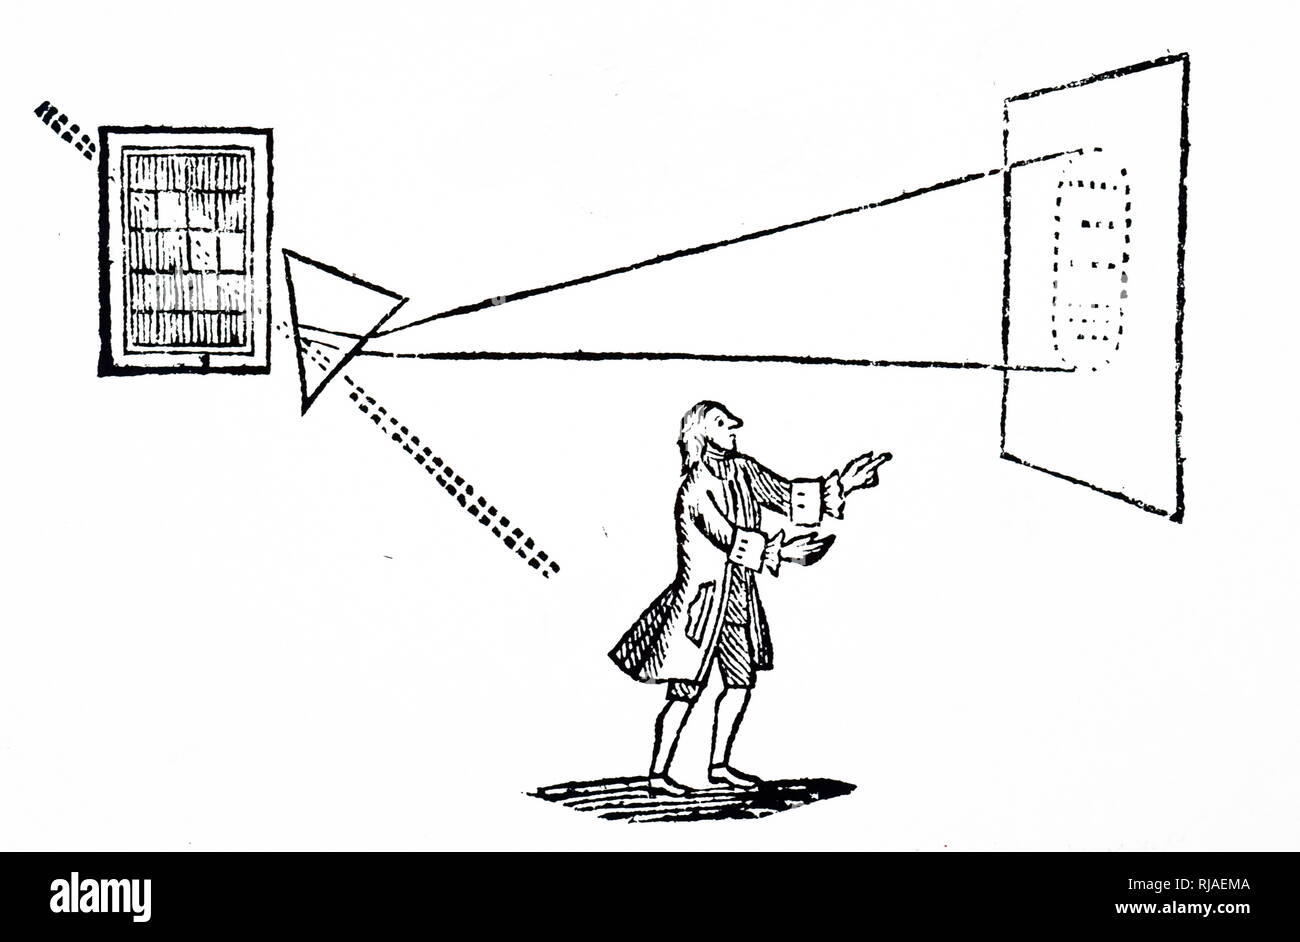 An engraving depicting Isaac Newton's experiment showing how a prism refracted a beam of light and broken down into the colours of the spectrum (right). The dotted line indicates the beam of light coming through the window, and the path it would take if not refracted by the prism. Dated 18th century - Stock Image